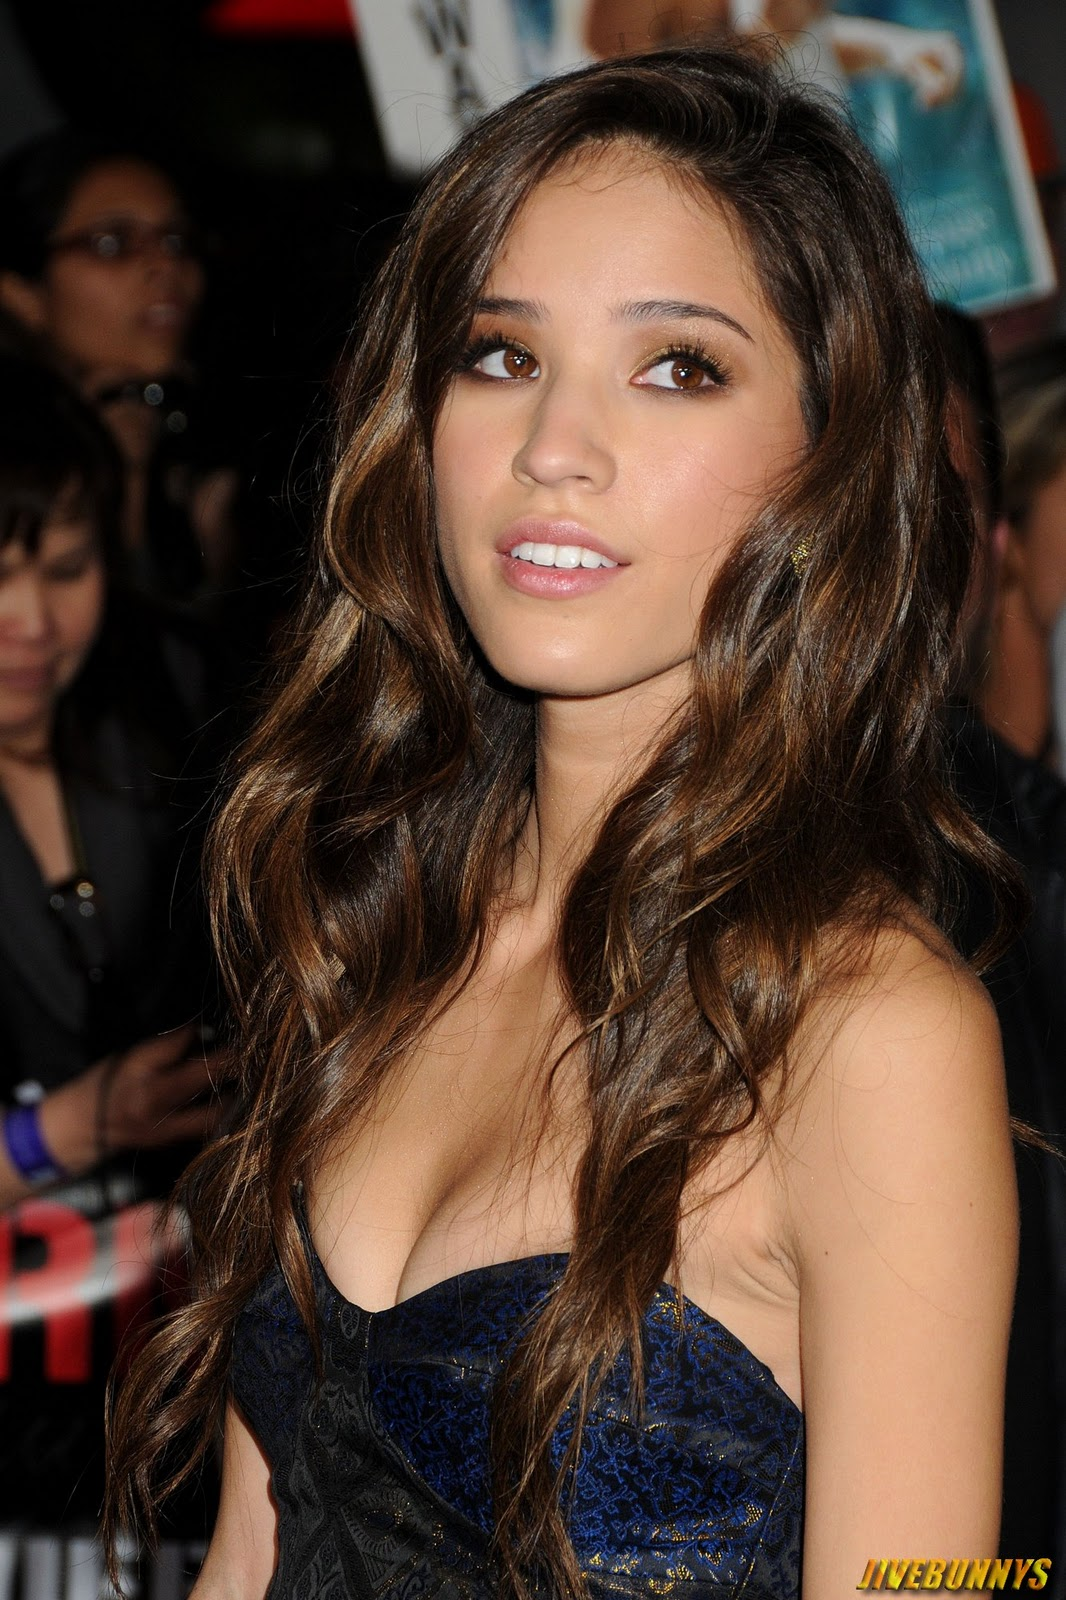 Kelsey chow sexi nude